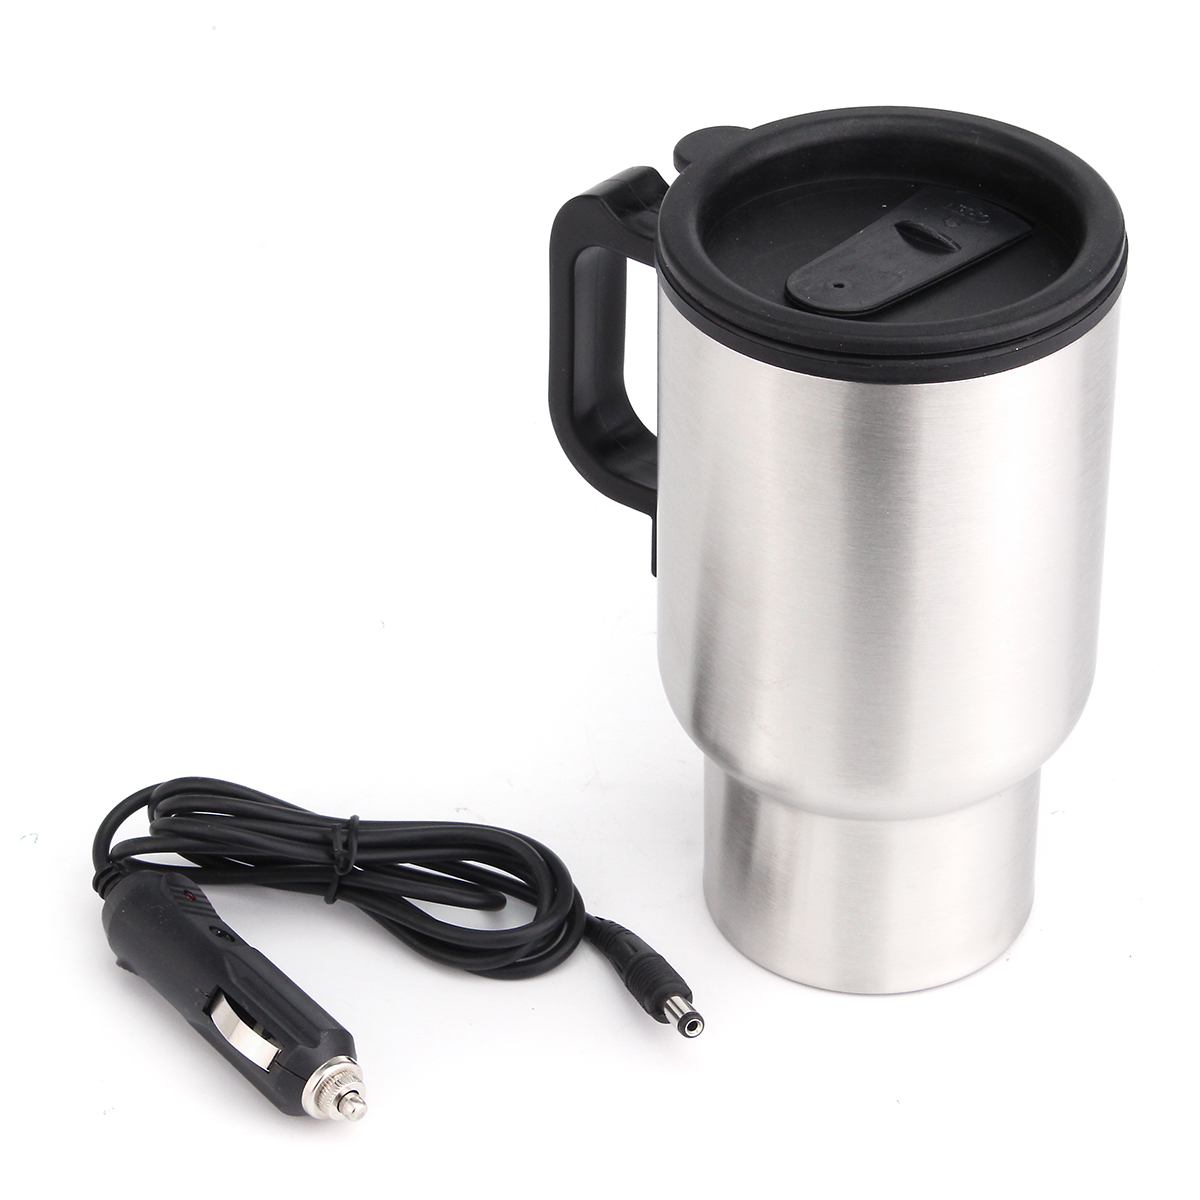 12V 450ml Stainless Kettle Car Cup Pot Water Auto Electric Heater with Cable